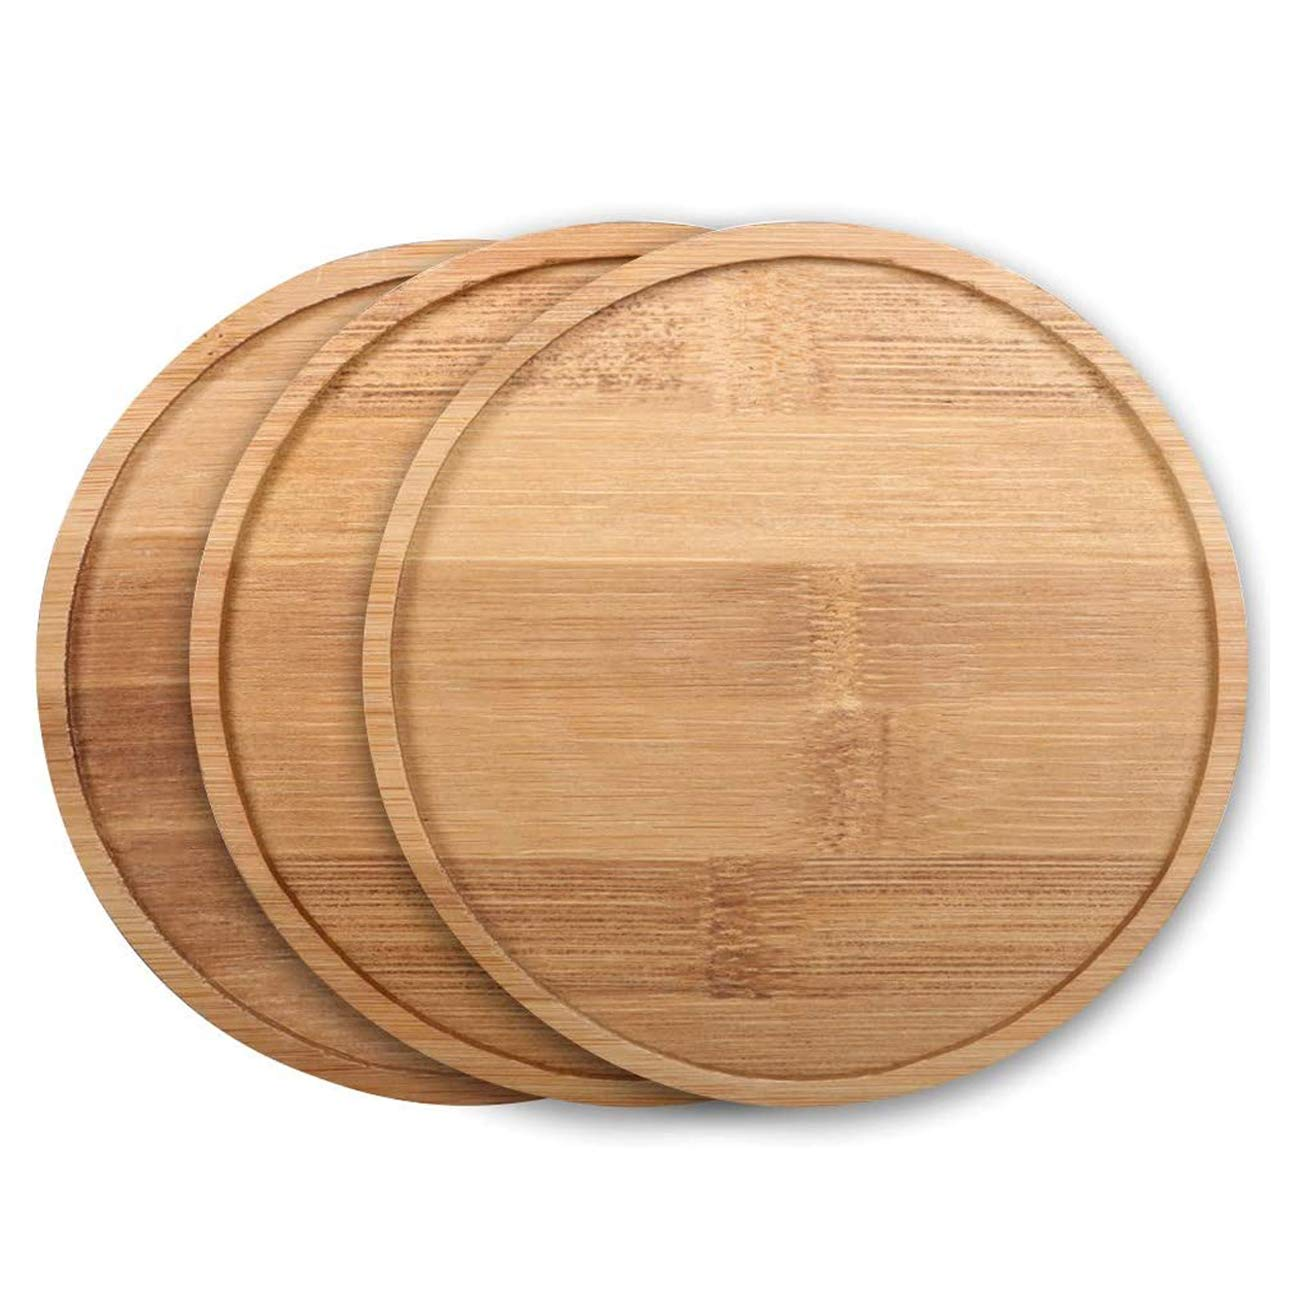 SQOWL 2 Pack 5.7 Inch Bamboo Tray Round Plant Saucer Plant Pot Tray for Indoor and Outdoor Plants